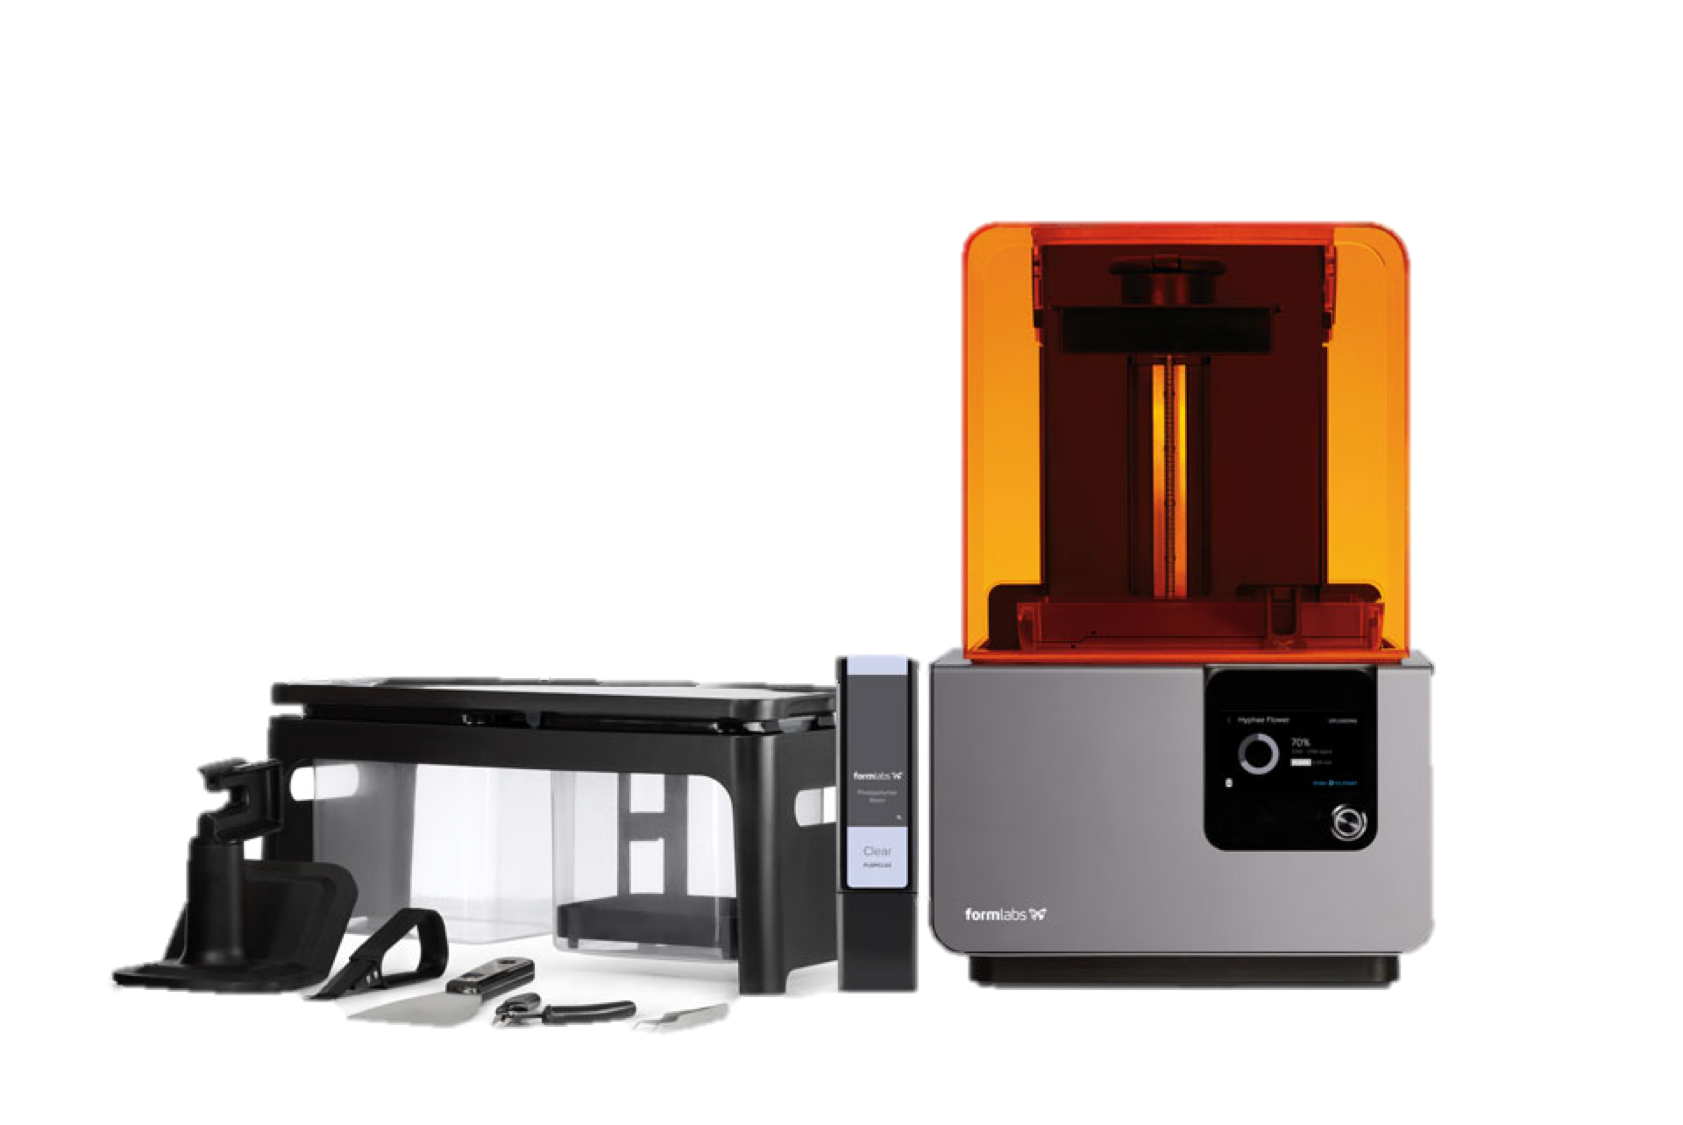 form 2 formlabs